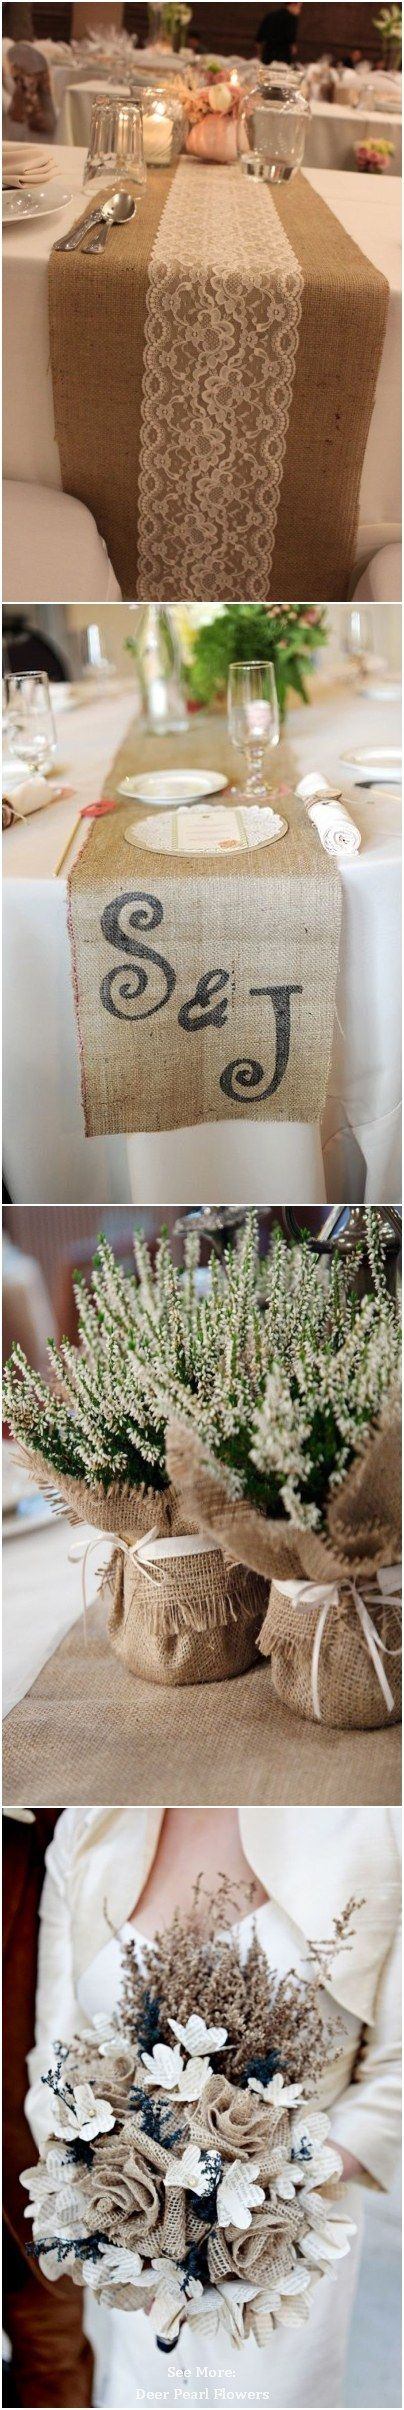 Best Wedding Table Decor Images On Pinterest Marriage